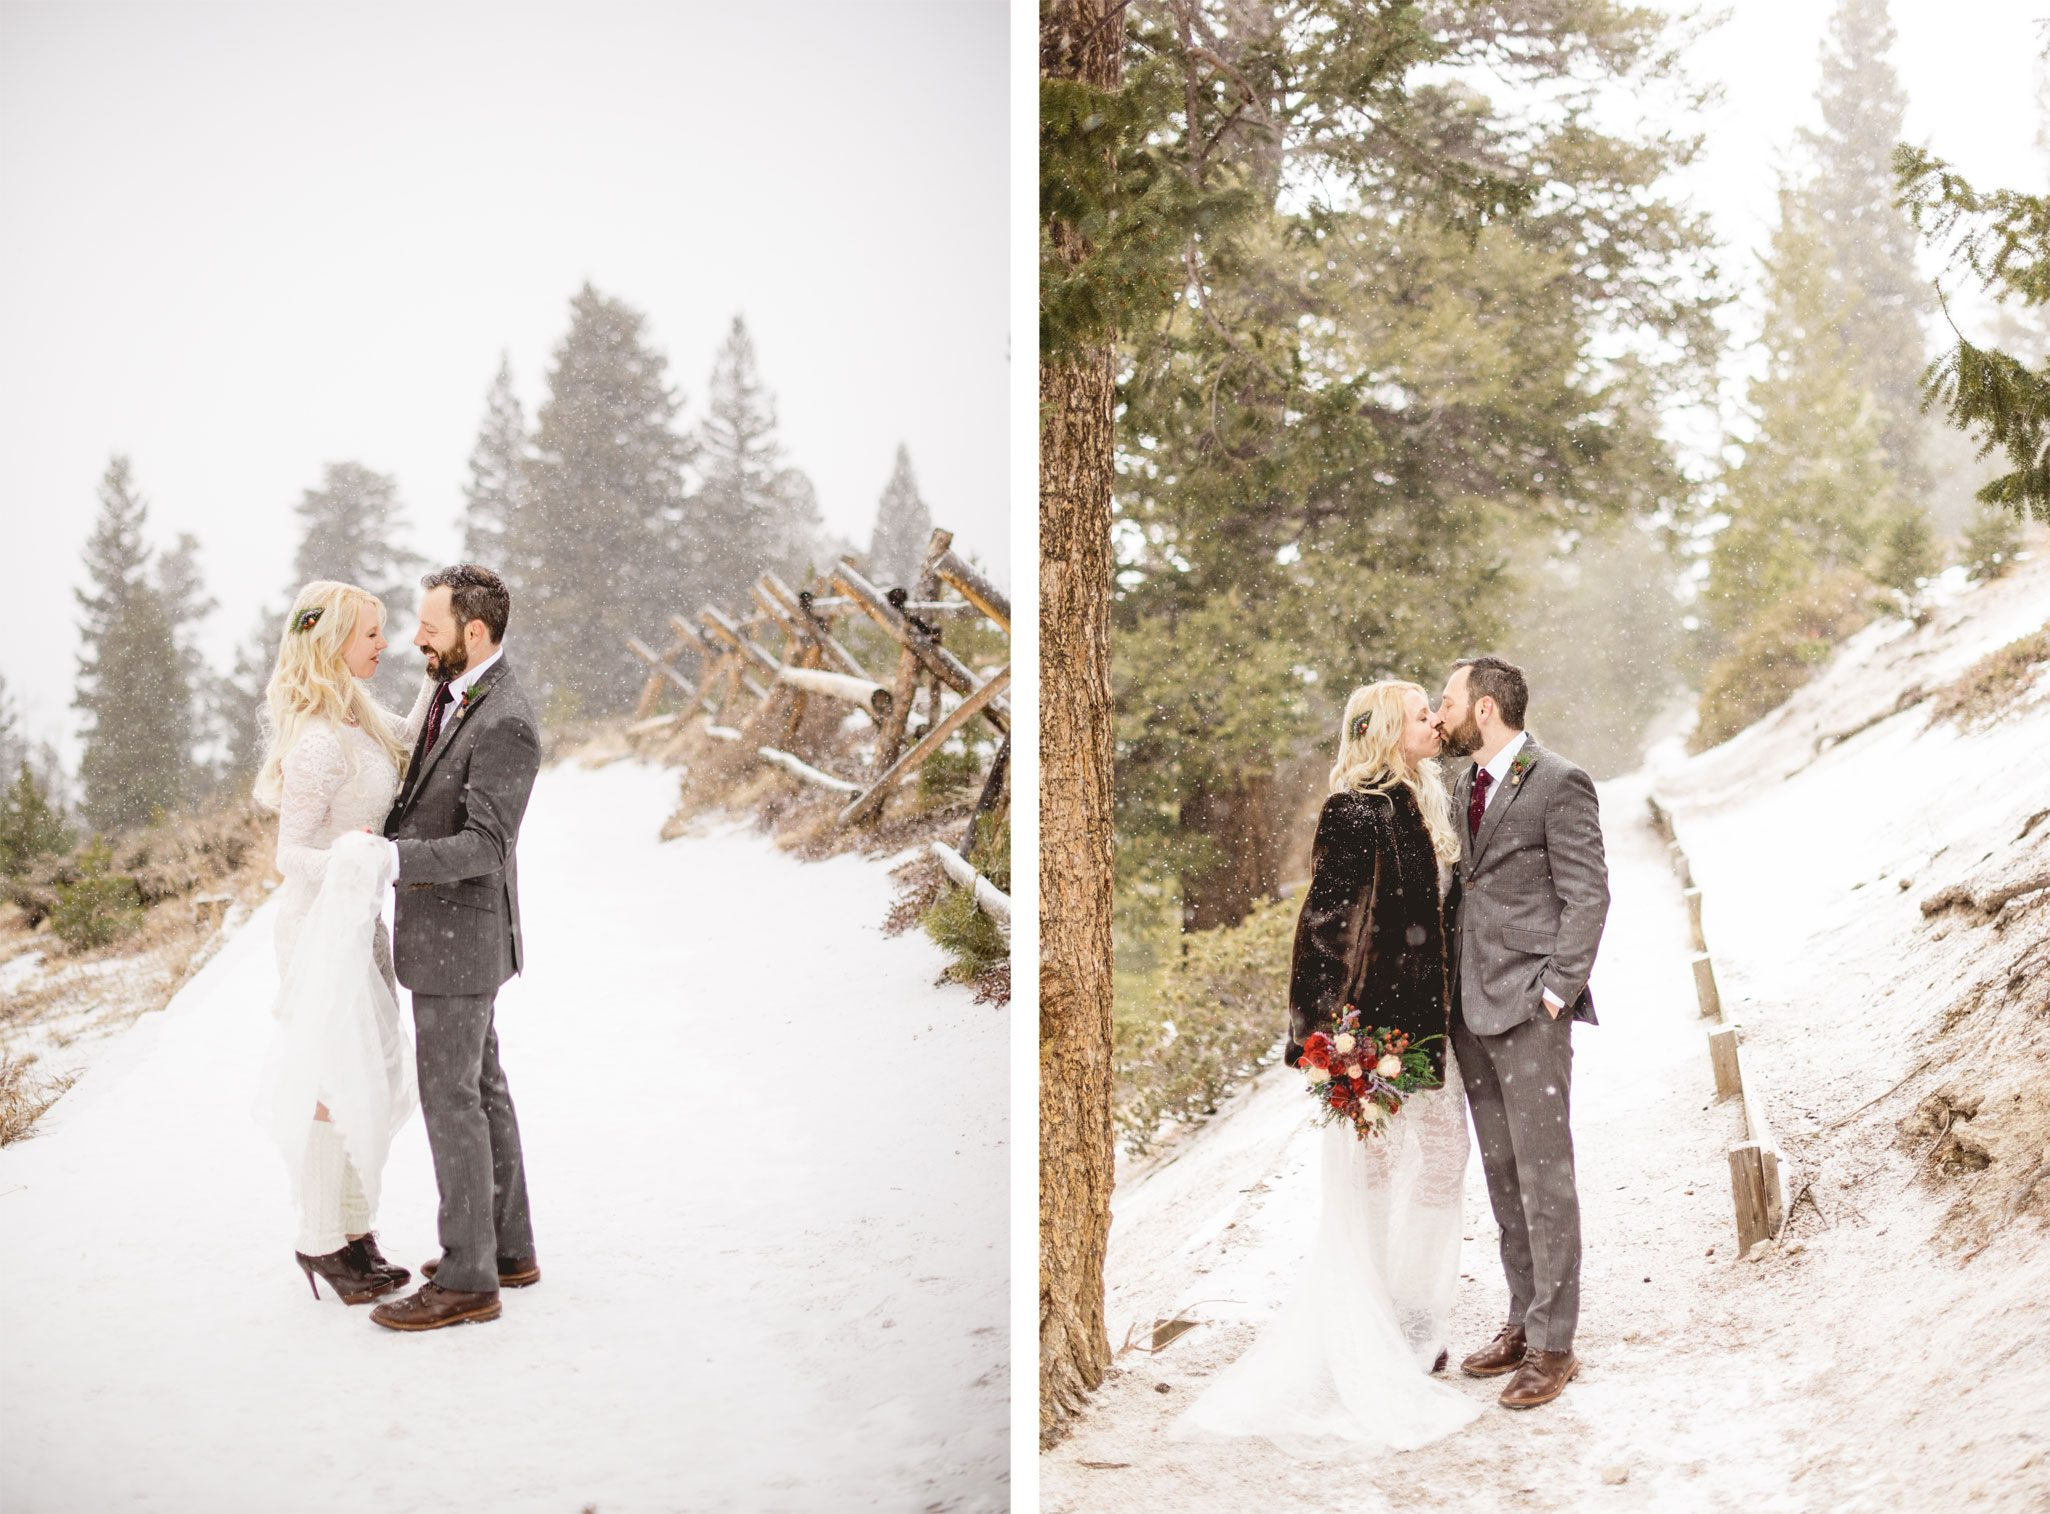 A Snowy Mountain Elopement in Colorado